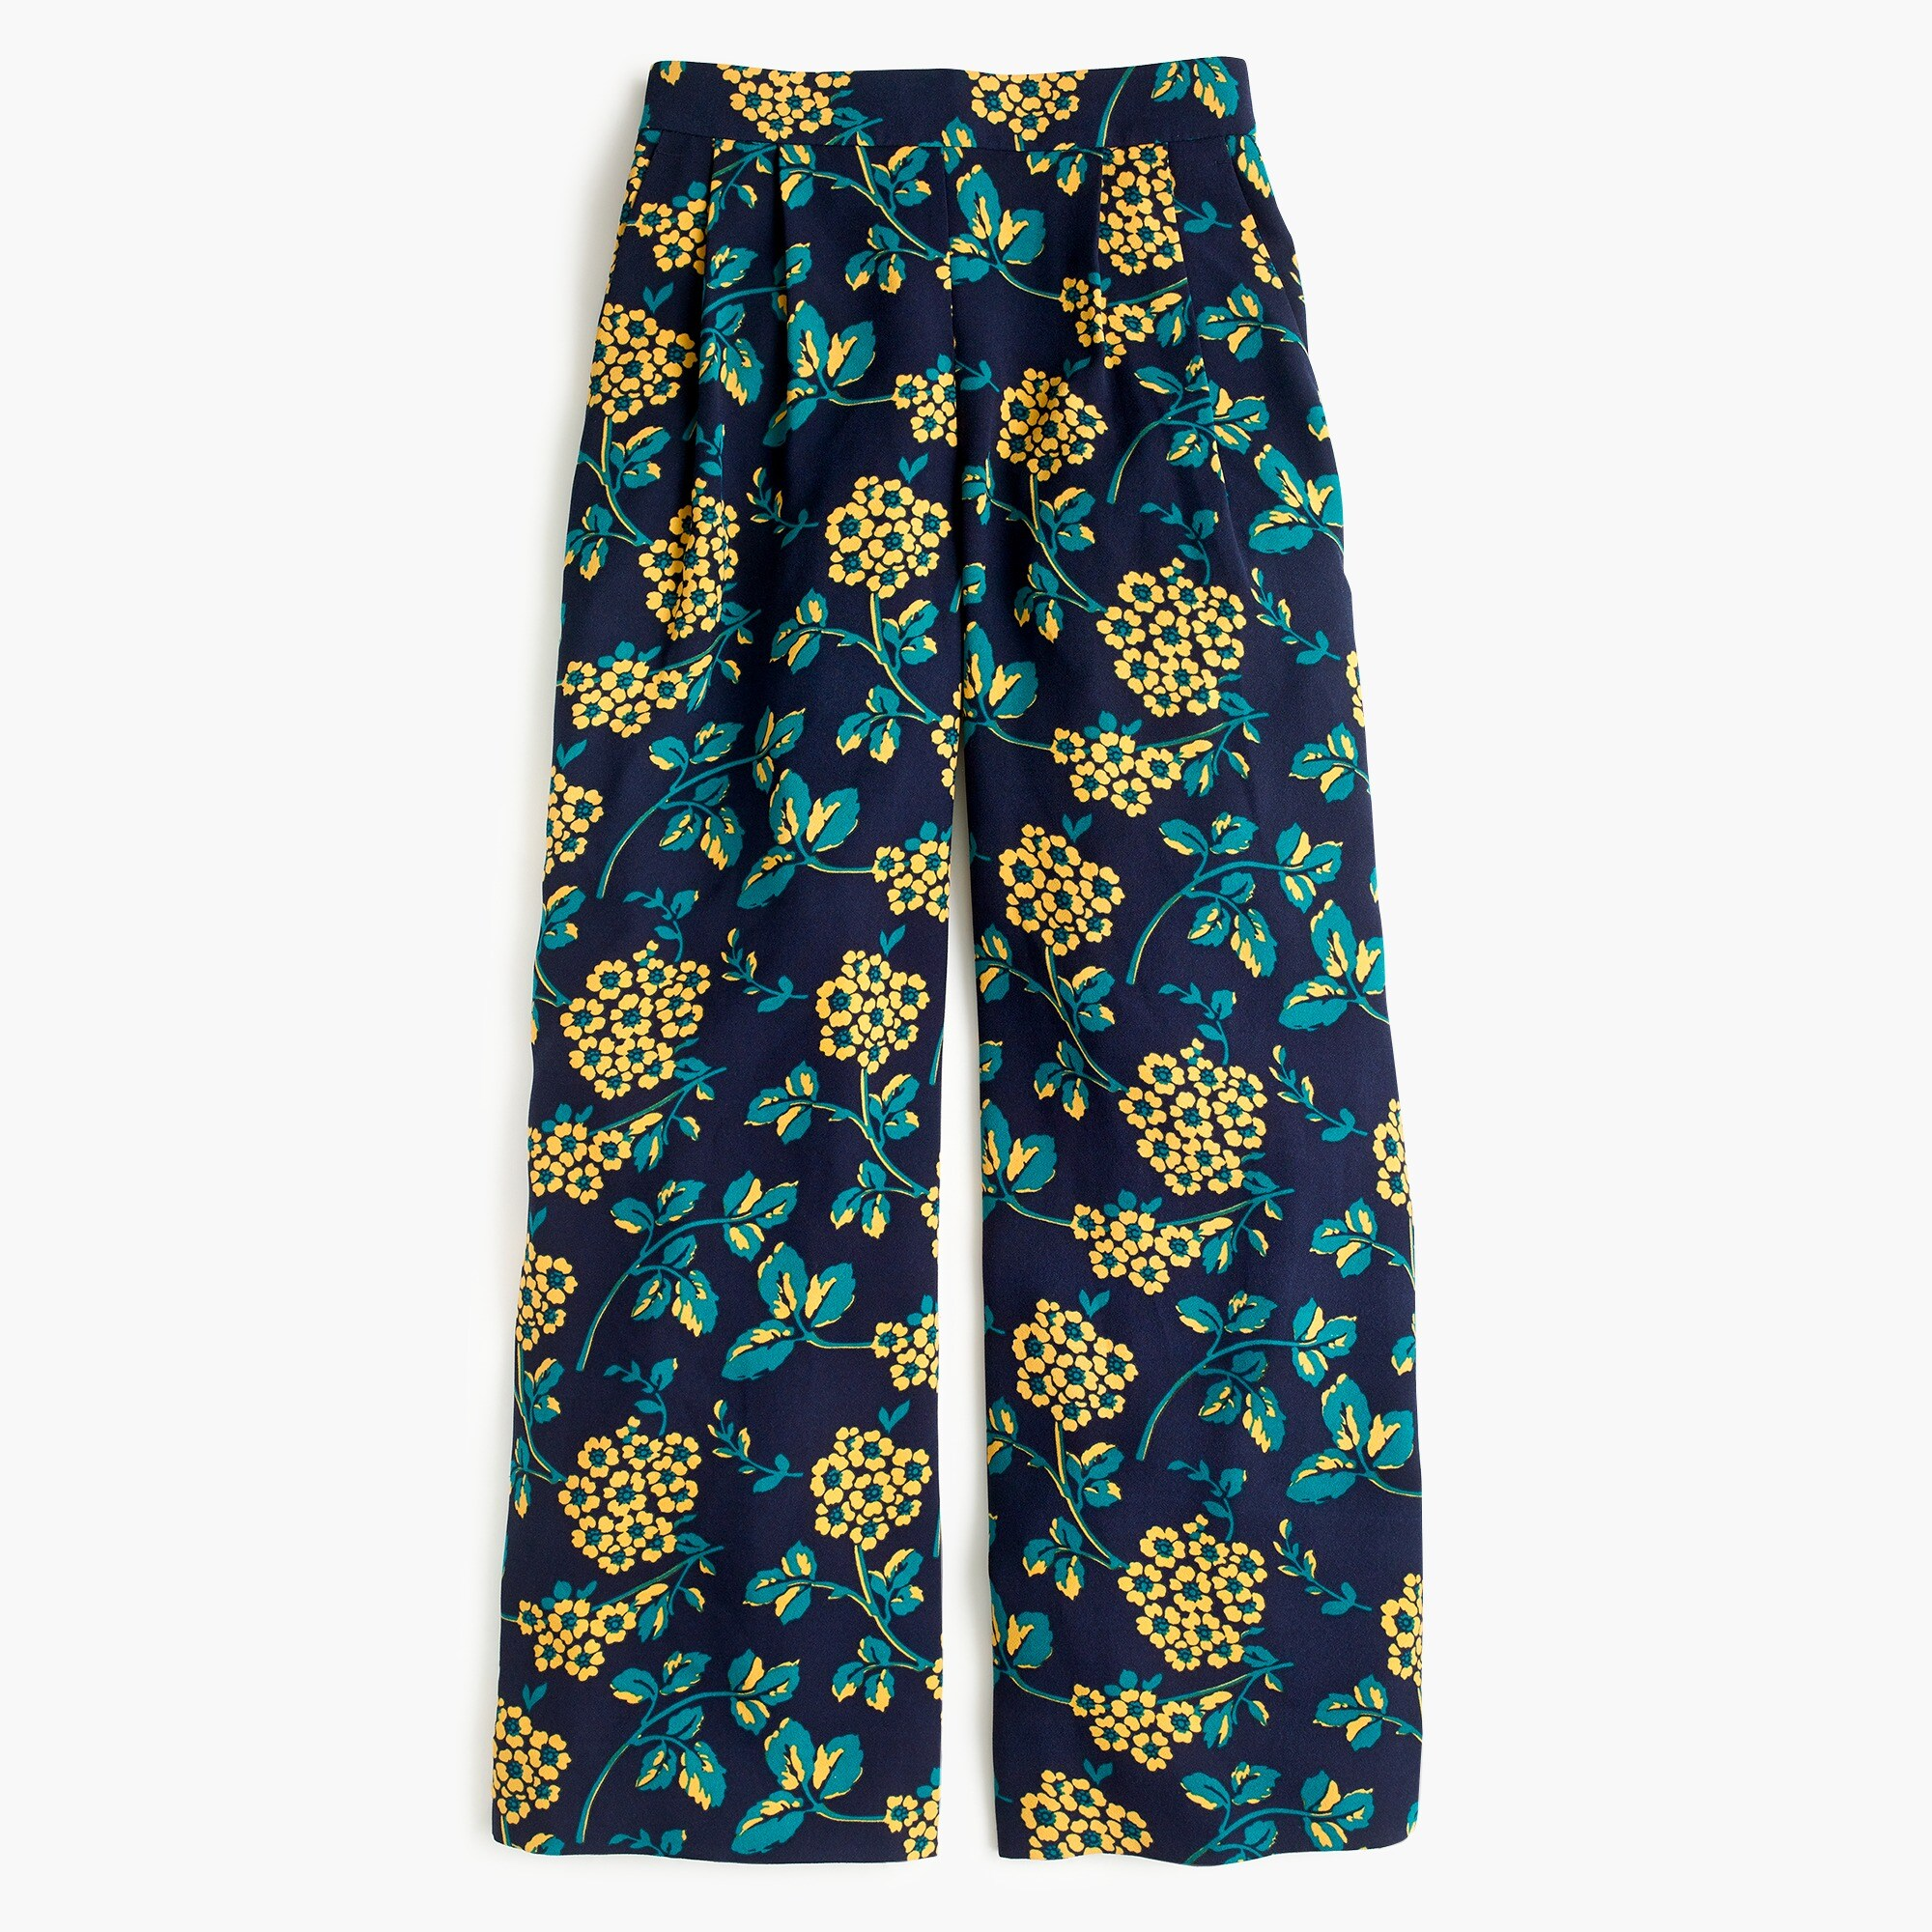 Image 1 for Tall wide-leg cropped floral pant